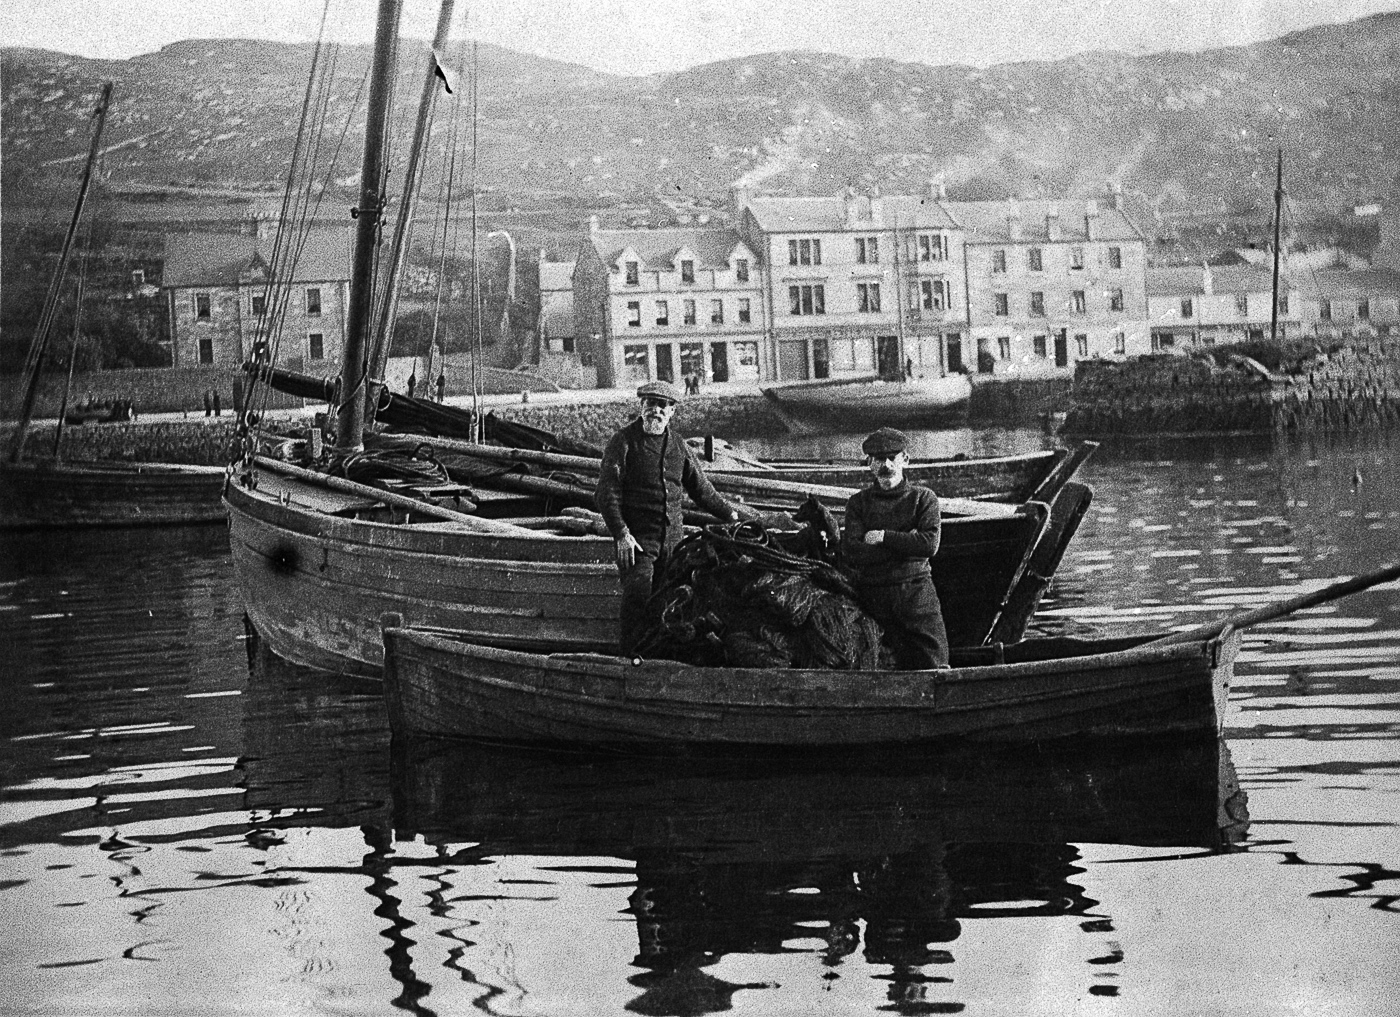 Two men transferring a ringnet into a small boat, Tarbert, 1912. L-R: Duncan Blair, unknown. Duncan Blair is grandfather to Cecil Finn.